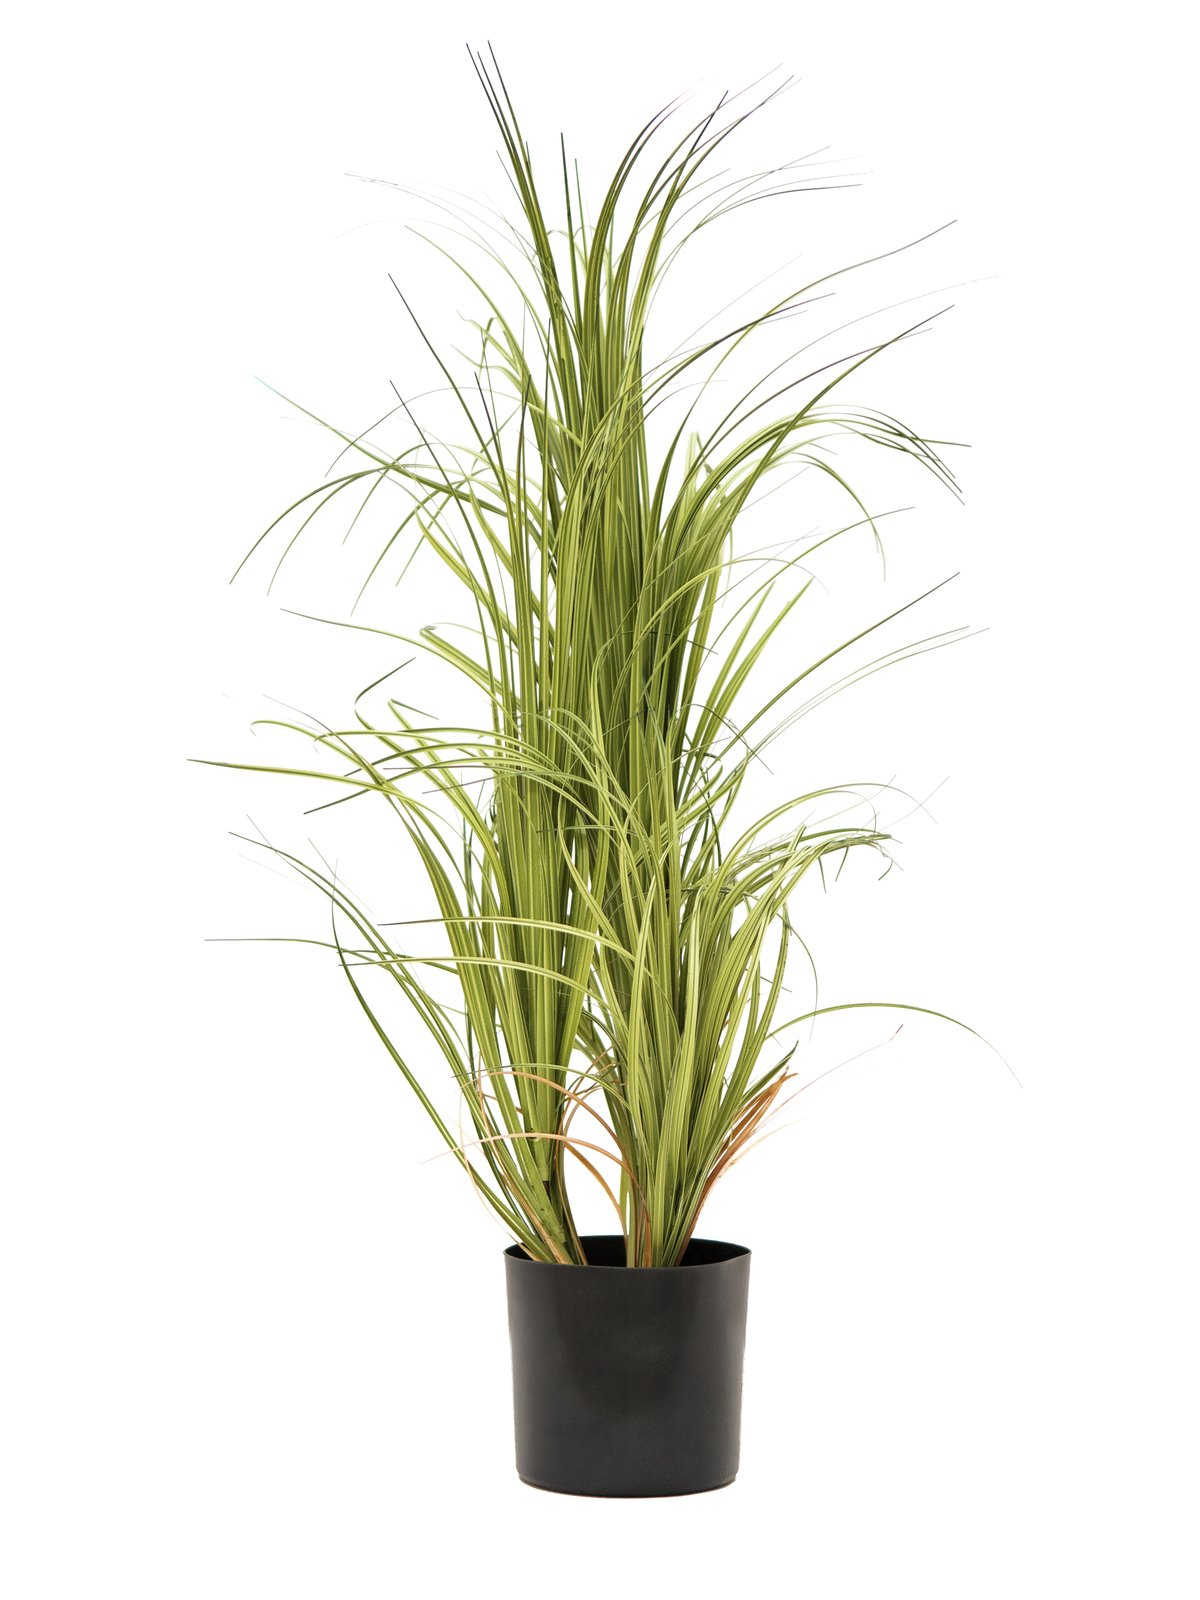 buisson-dracena-artificiel-1.